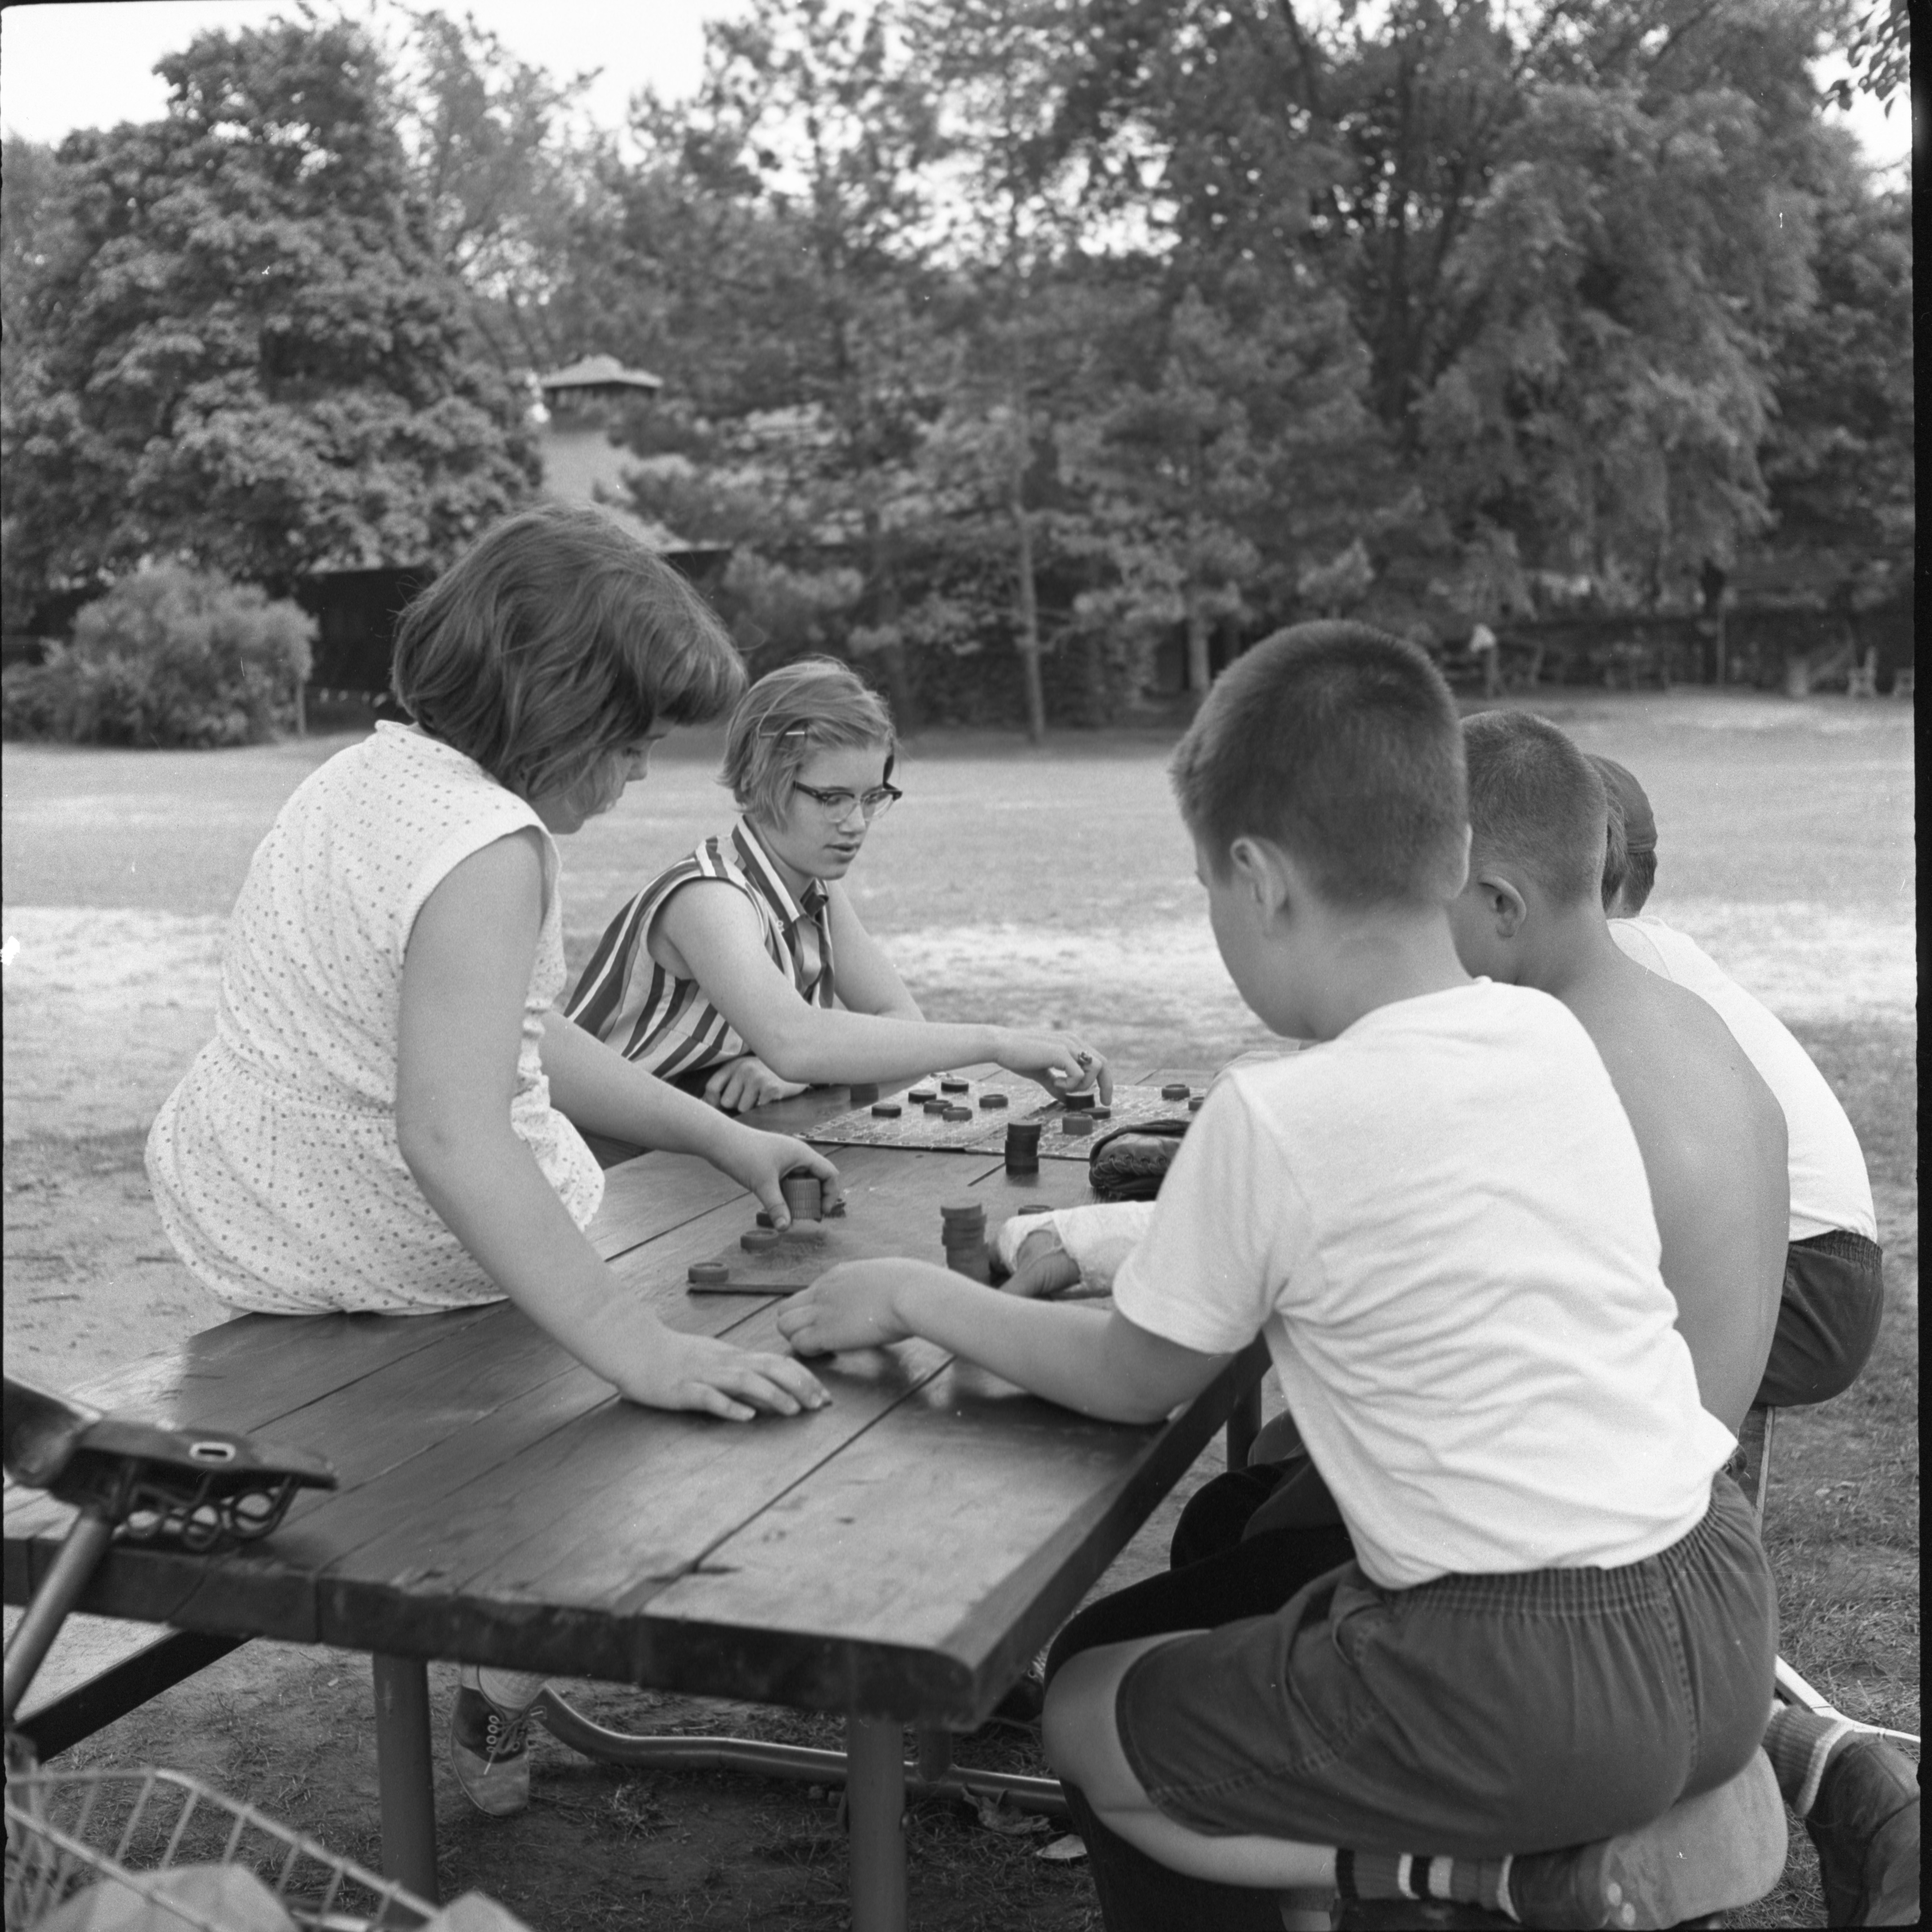 Children Play Checkers At Burns Park, June 1957 image